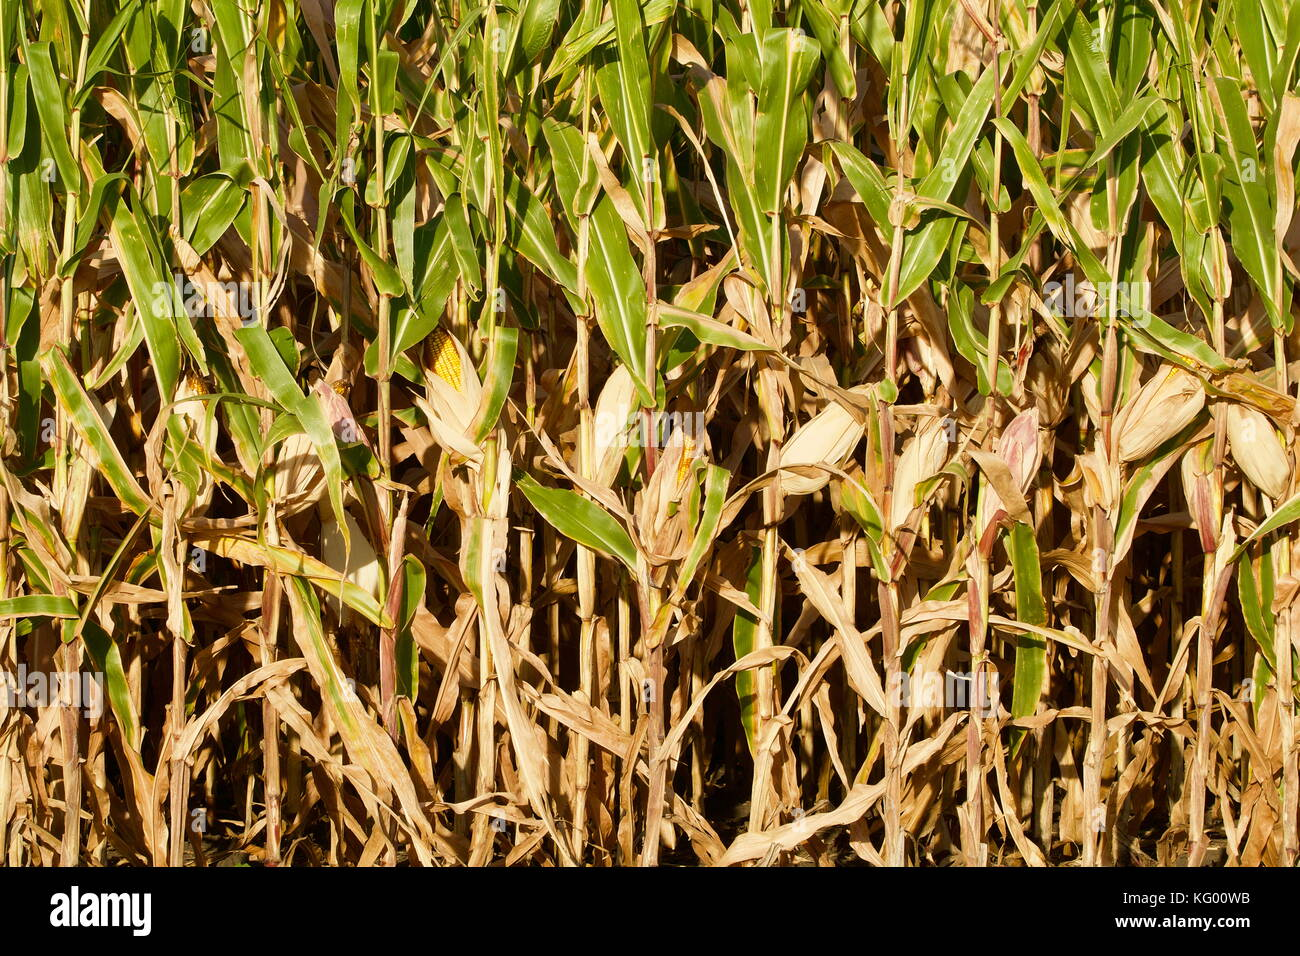 Field corn closeup with yellow ears of corn - Stock Image